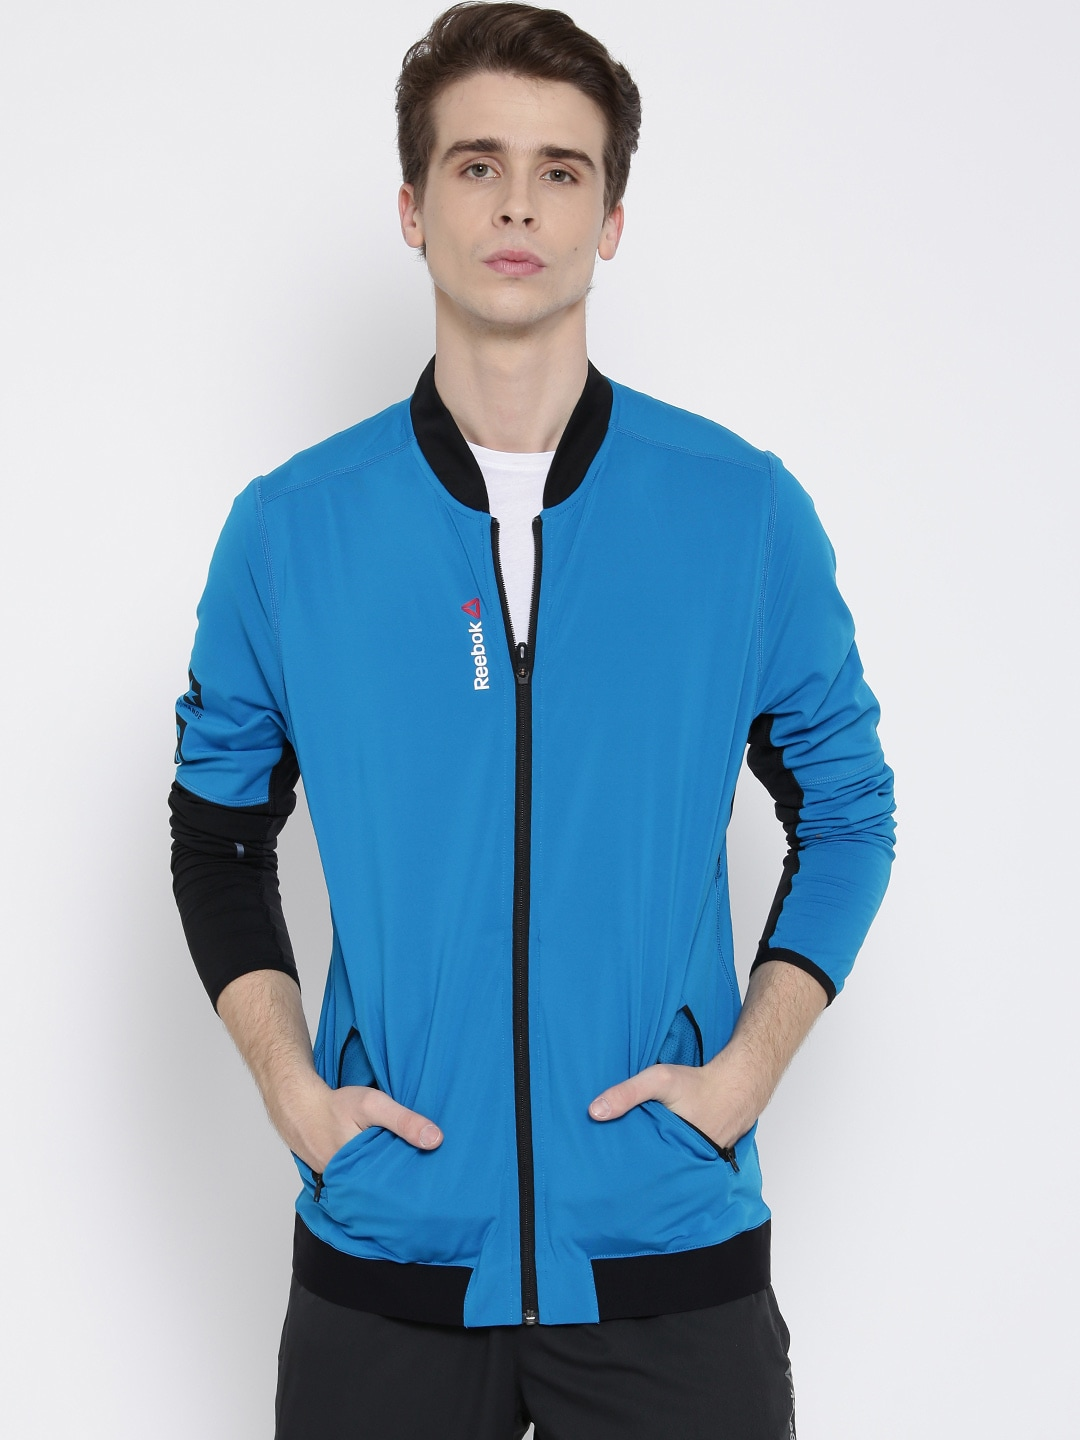 9d19259f681 Reebok s93610 Blue Os Trk Slim Training Jacket - Best Price in India ...